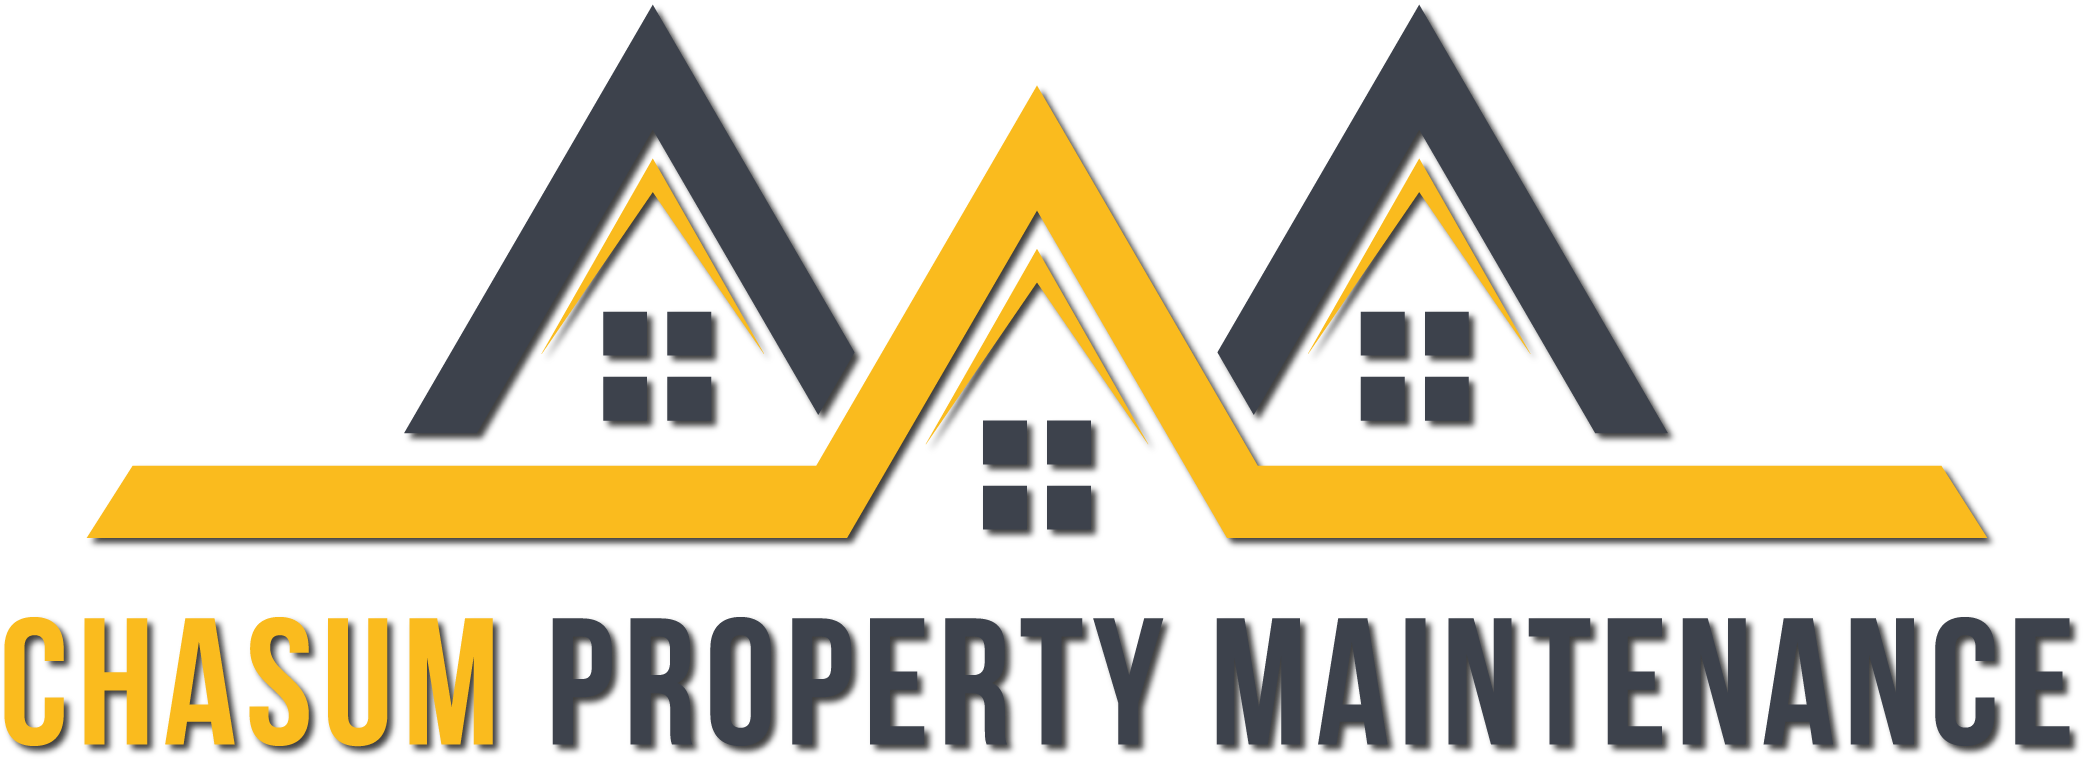 chasum-property-logo-master-with-shadow